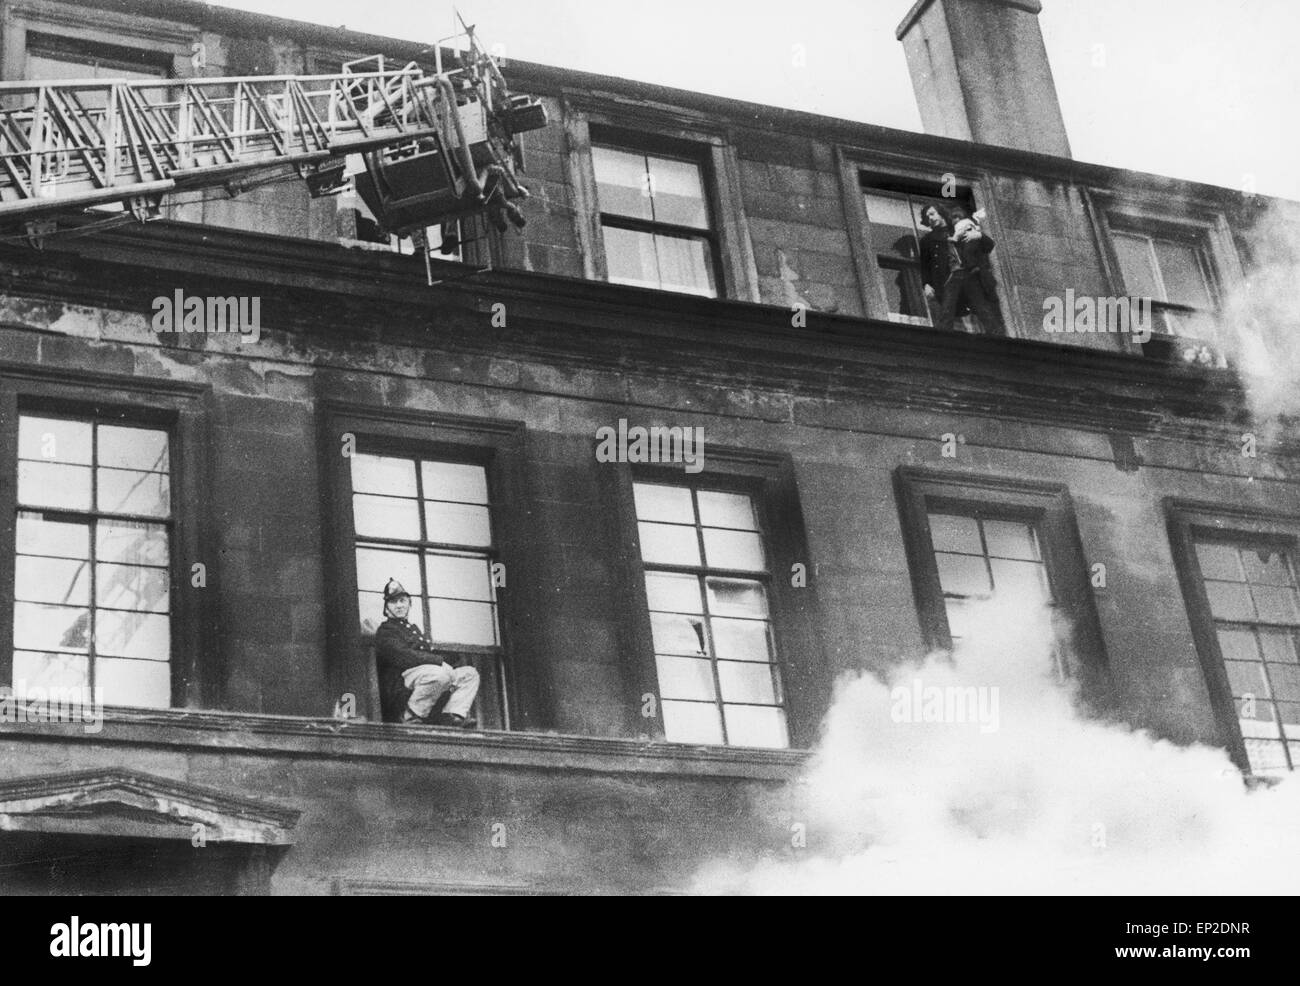 Fire at Maryhill Road Glasgow. Fire breaks out in an unoccupied furniture shop spreading along the row of shops - Stock Image